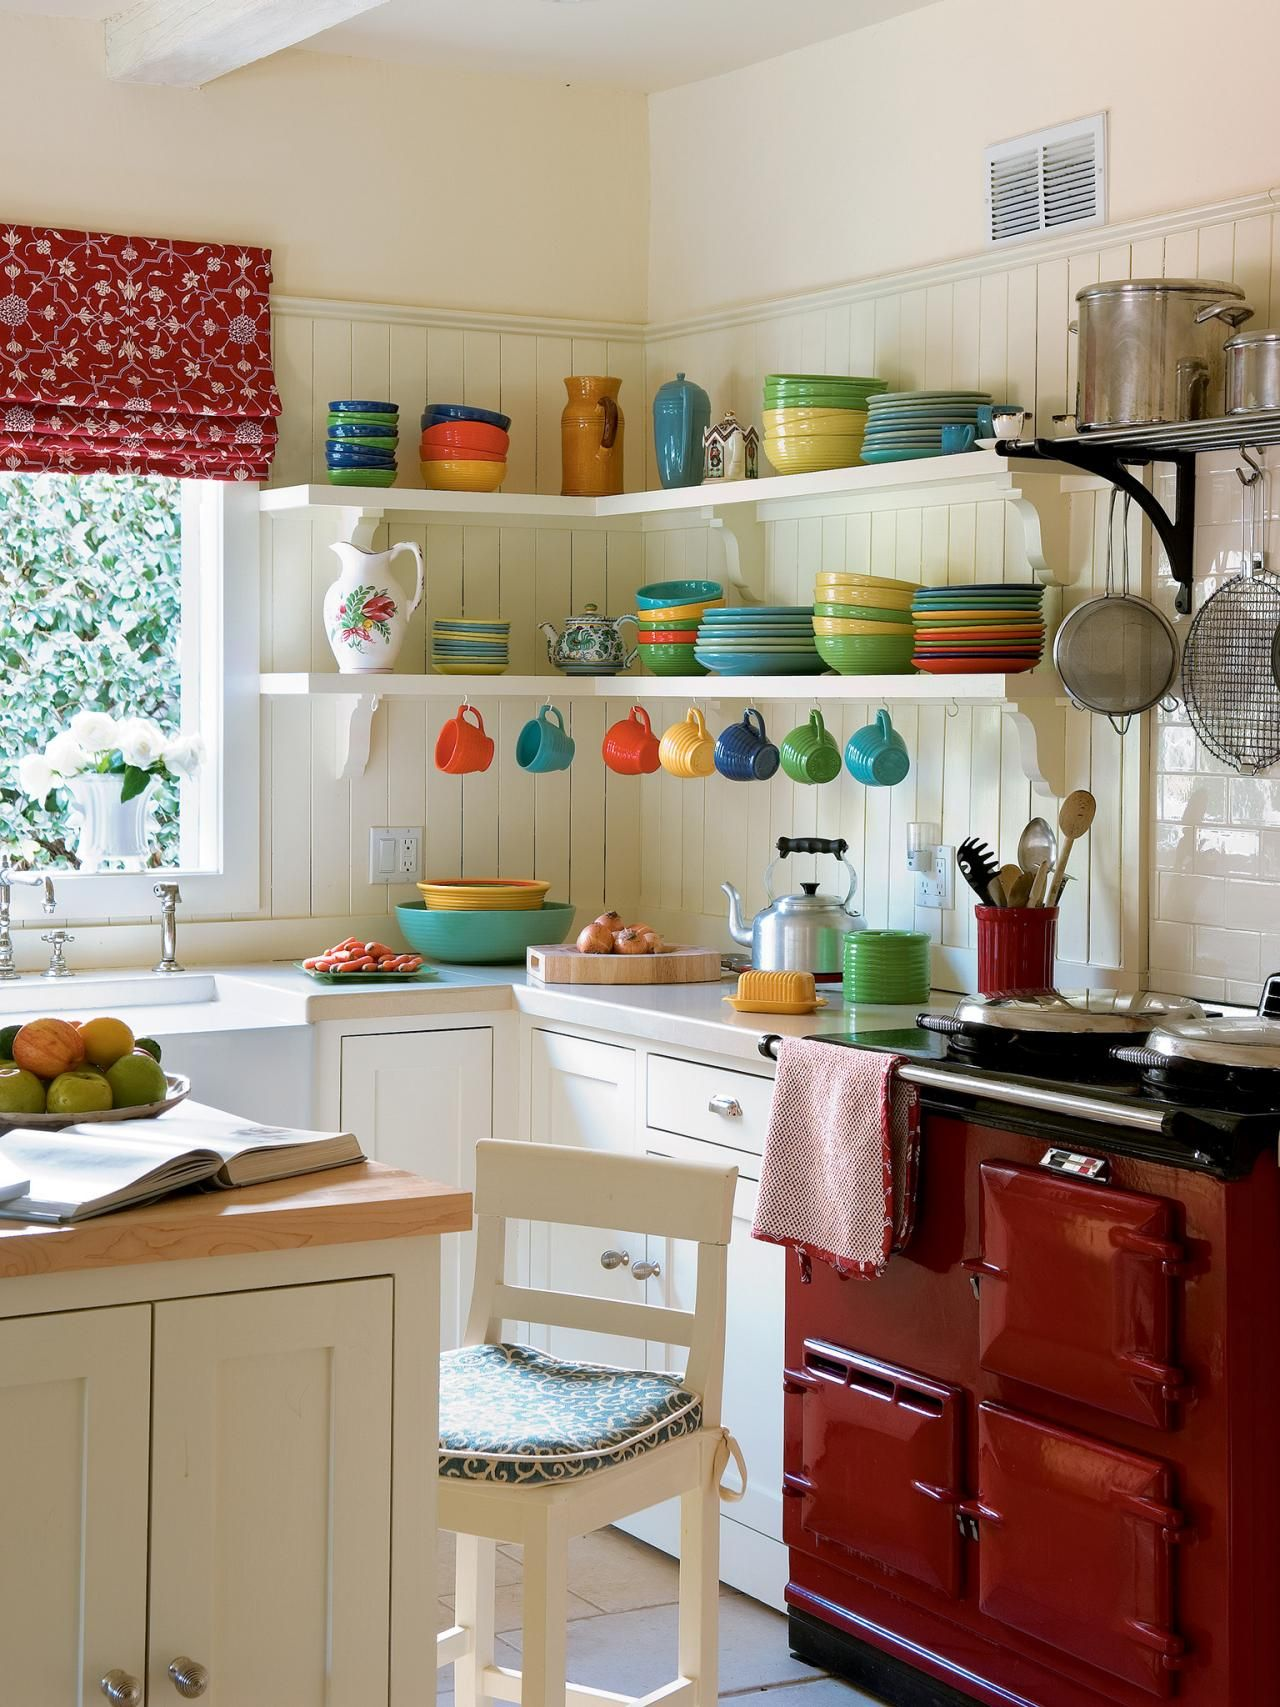 Colorful Fiestaware adds pops of color to this white country kitchen. A red Roman shade matches a red stove. There's a cozy bit of clutter to make you feel at home. #kitchenremodelsmall